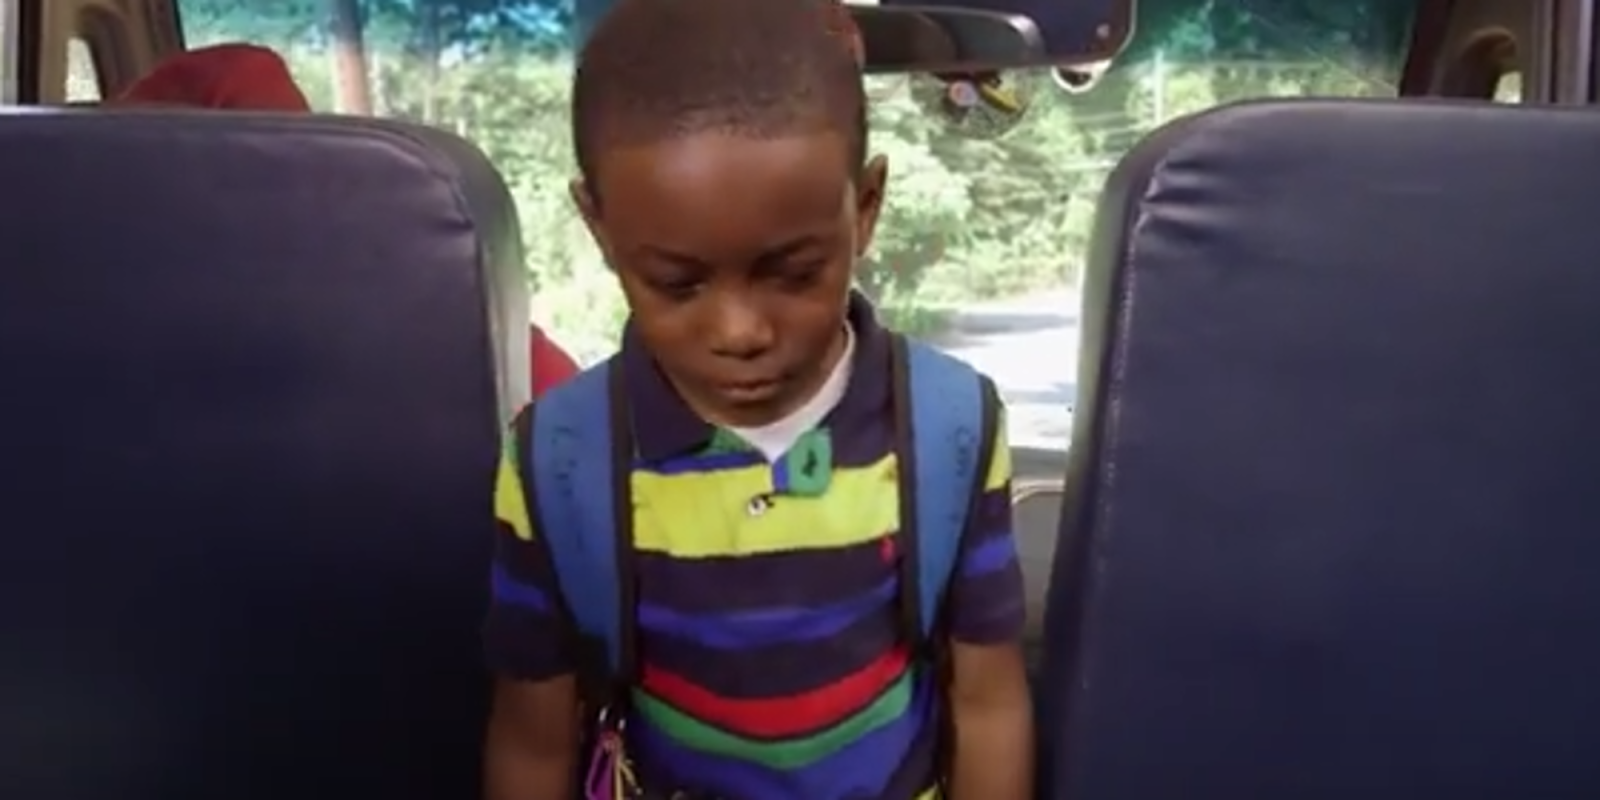 This Eye-Opening Video Will Make Adults Reconsider The Way They Talk To Children